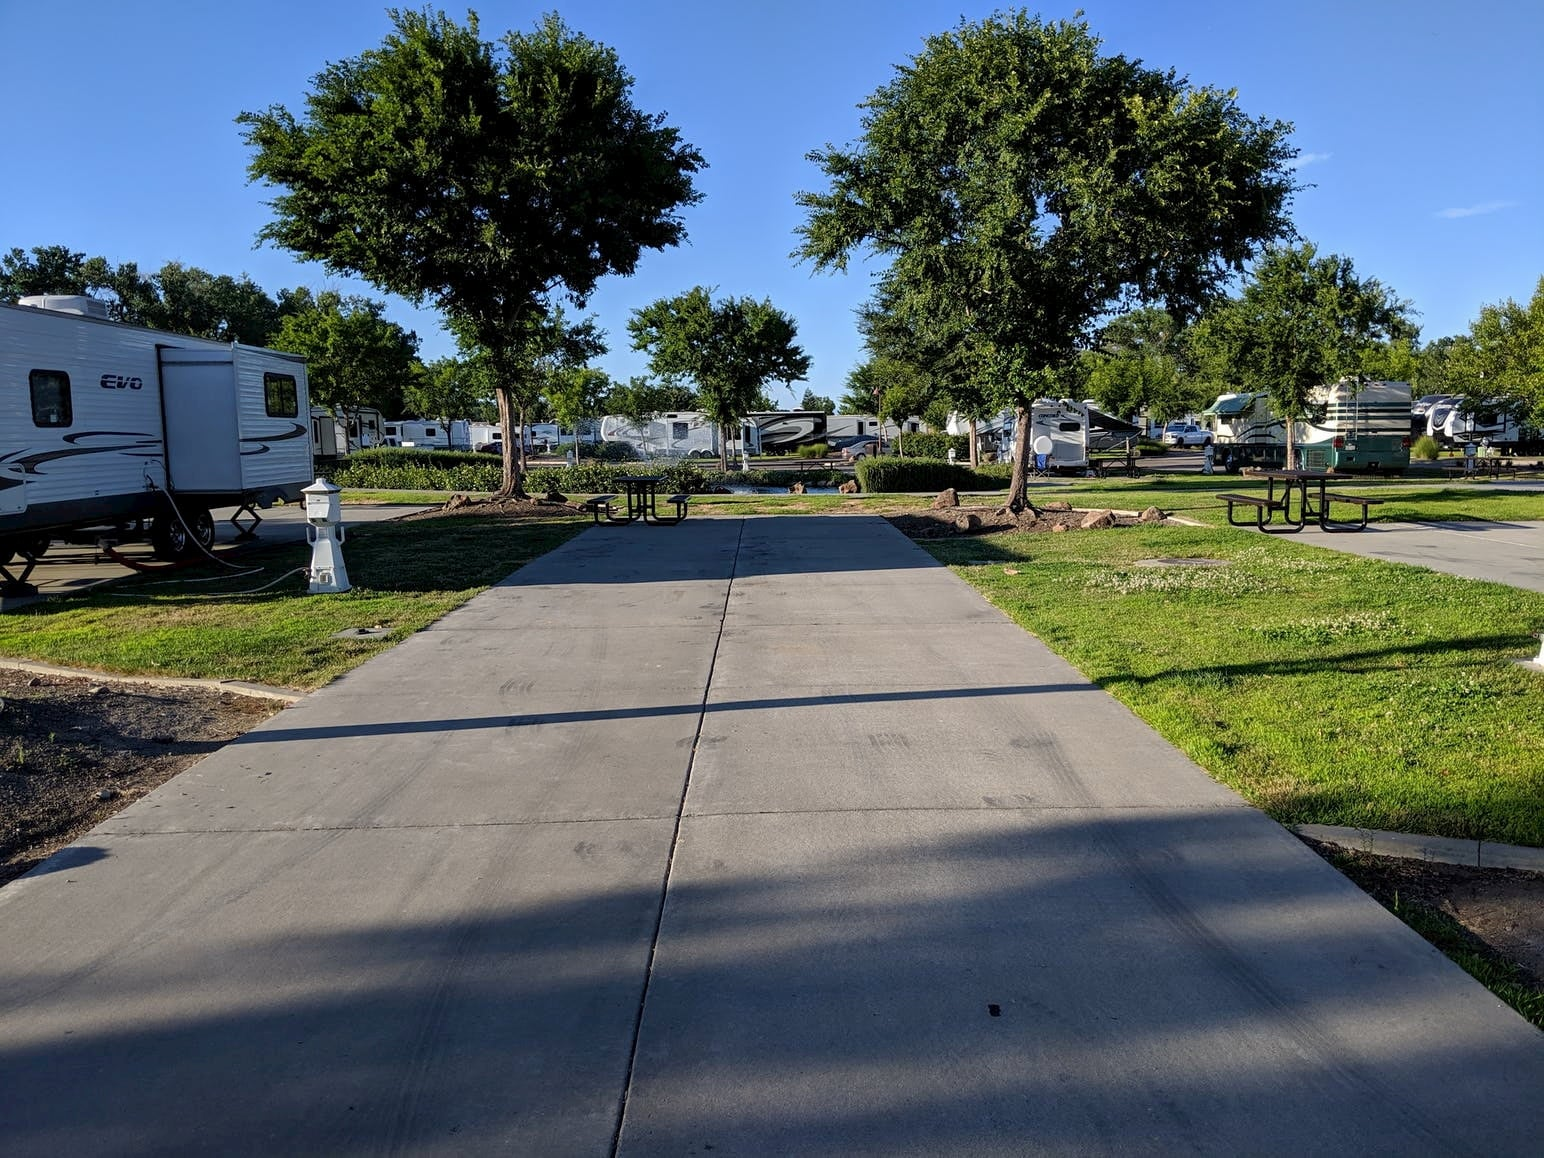 Paved RV park surrounded by oak trees and green lawn.